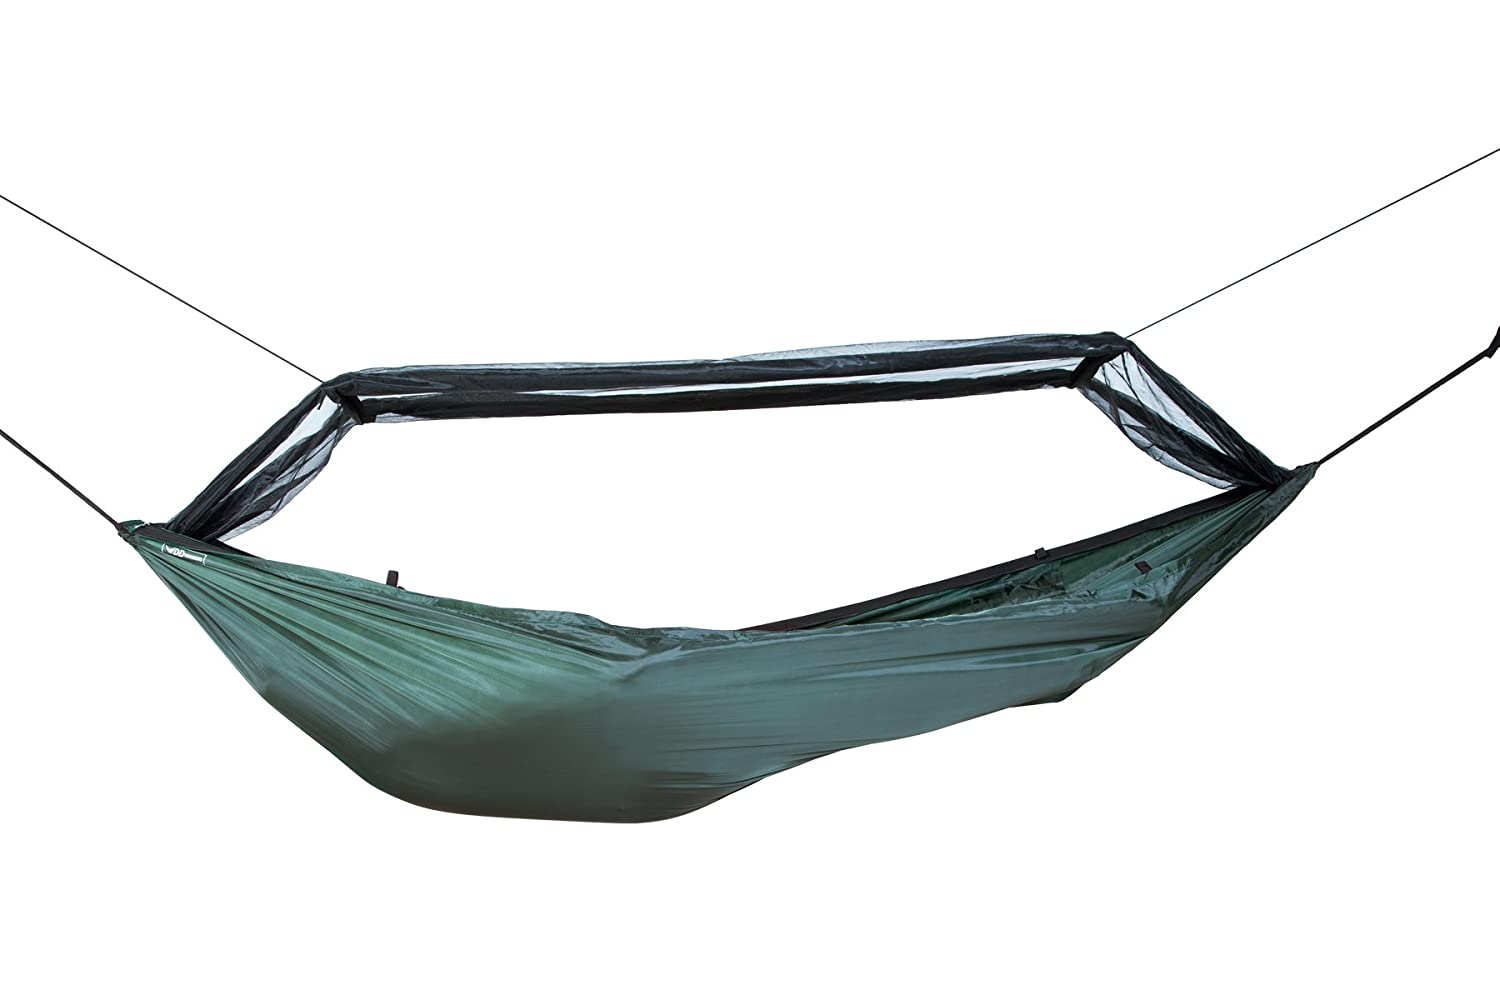 dd frontline hammock   lightweight camping jungle hammock with mosquito    olive green   amazon co uk  garden  u0026 outdoors dd frontline hammock   lightweight camping jungle hammock with      rh   amazon co uk